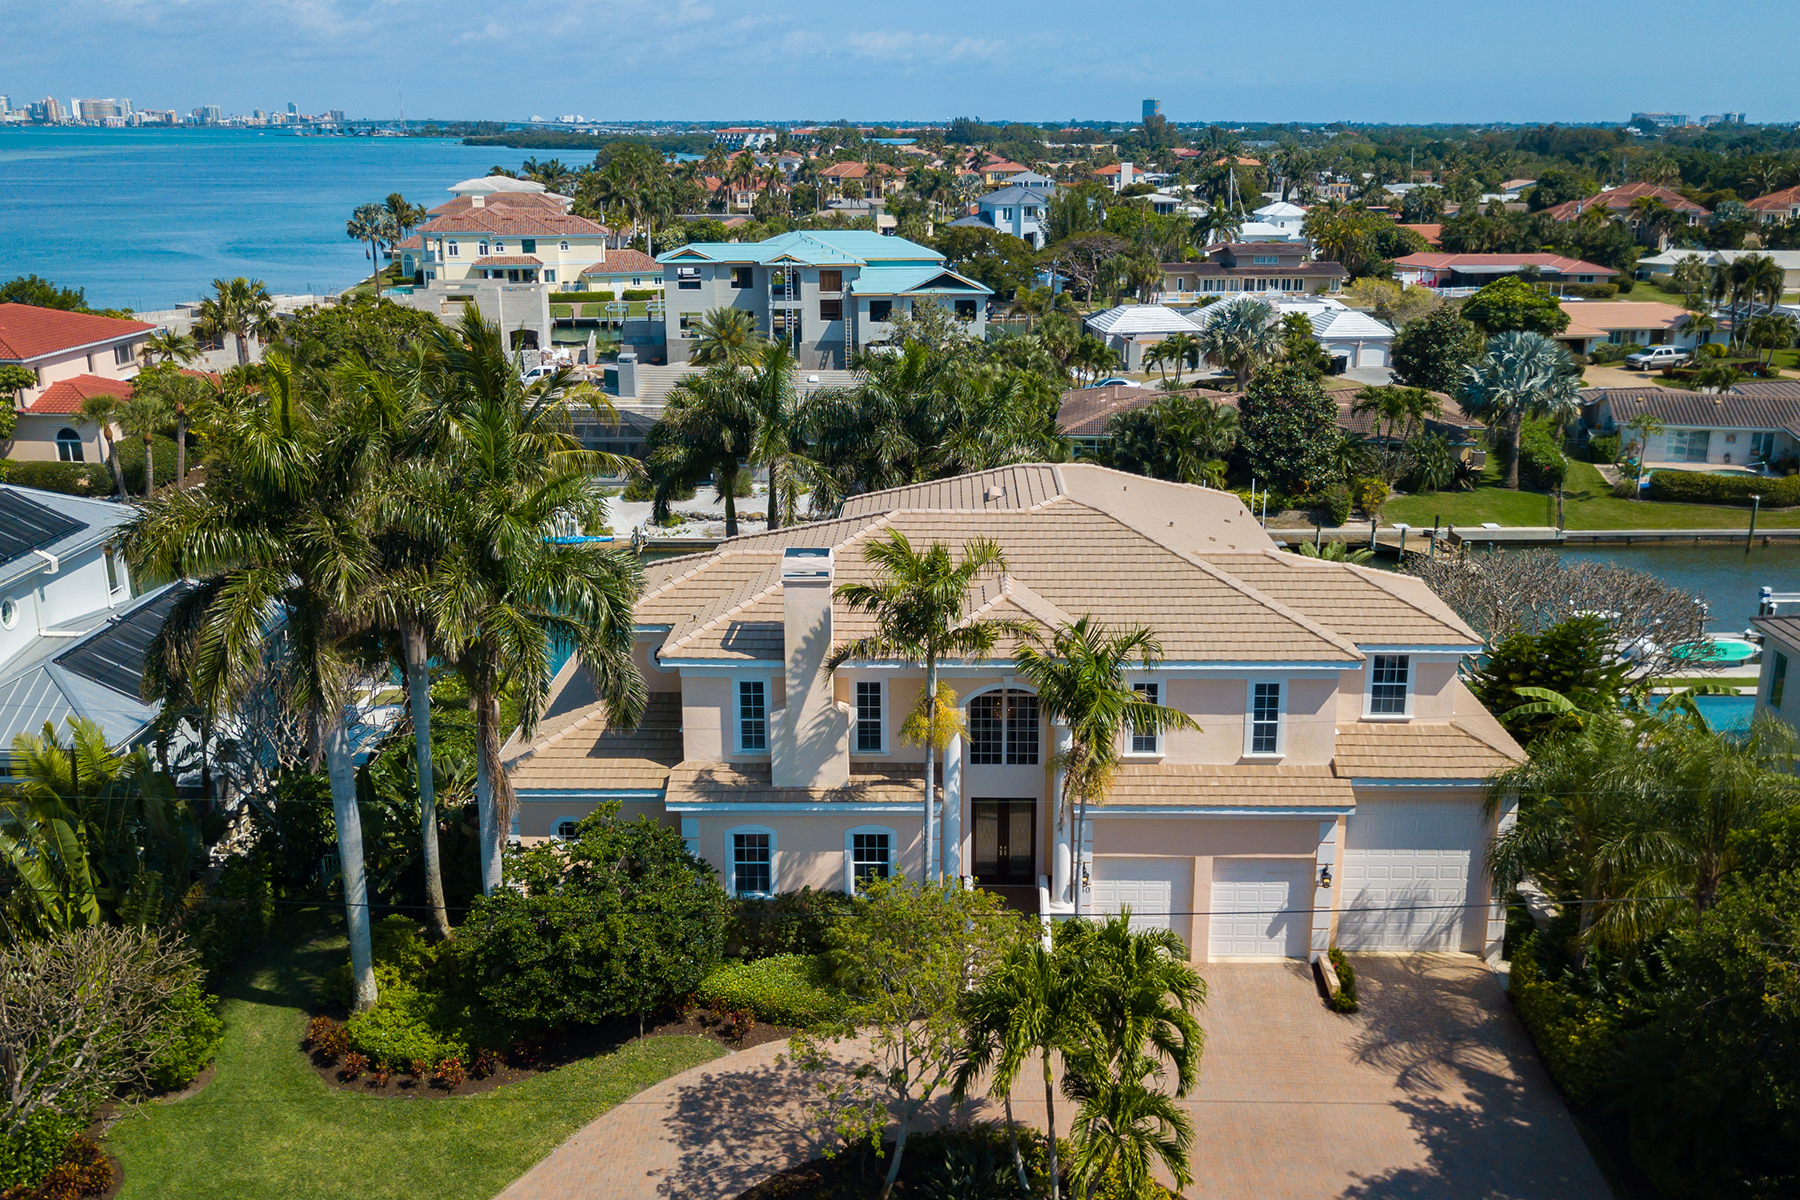 Single Family Homes for Active at COUNTRY CLUB SHORES 560 Hornblower Ln Longboat Key, Florida 34228 United States